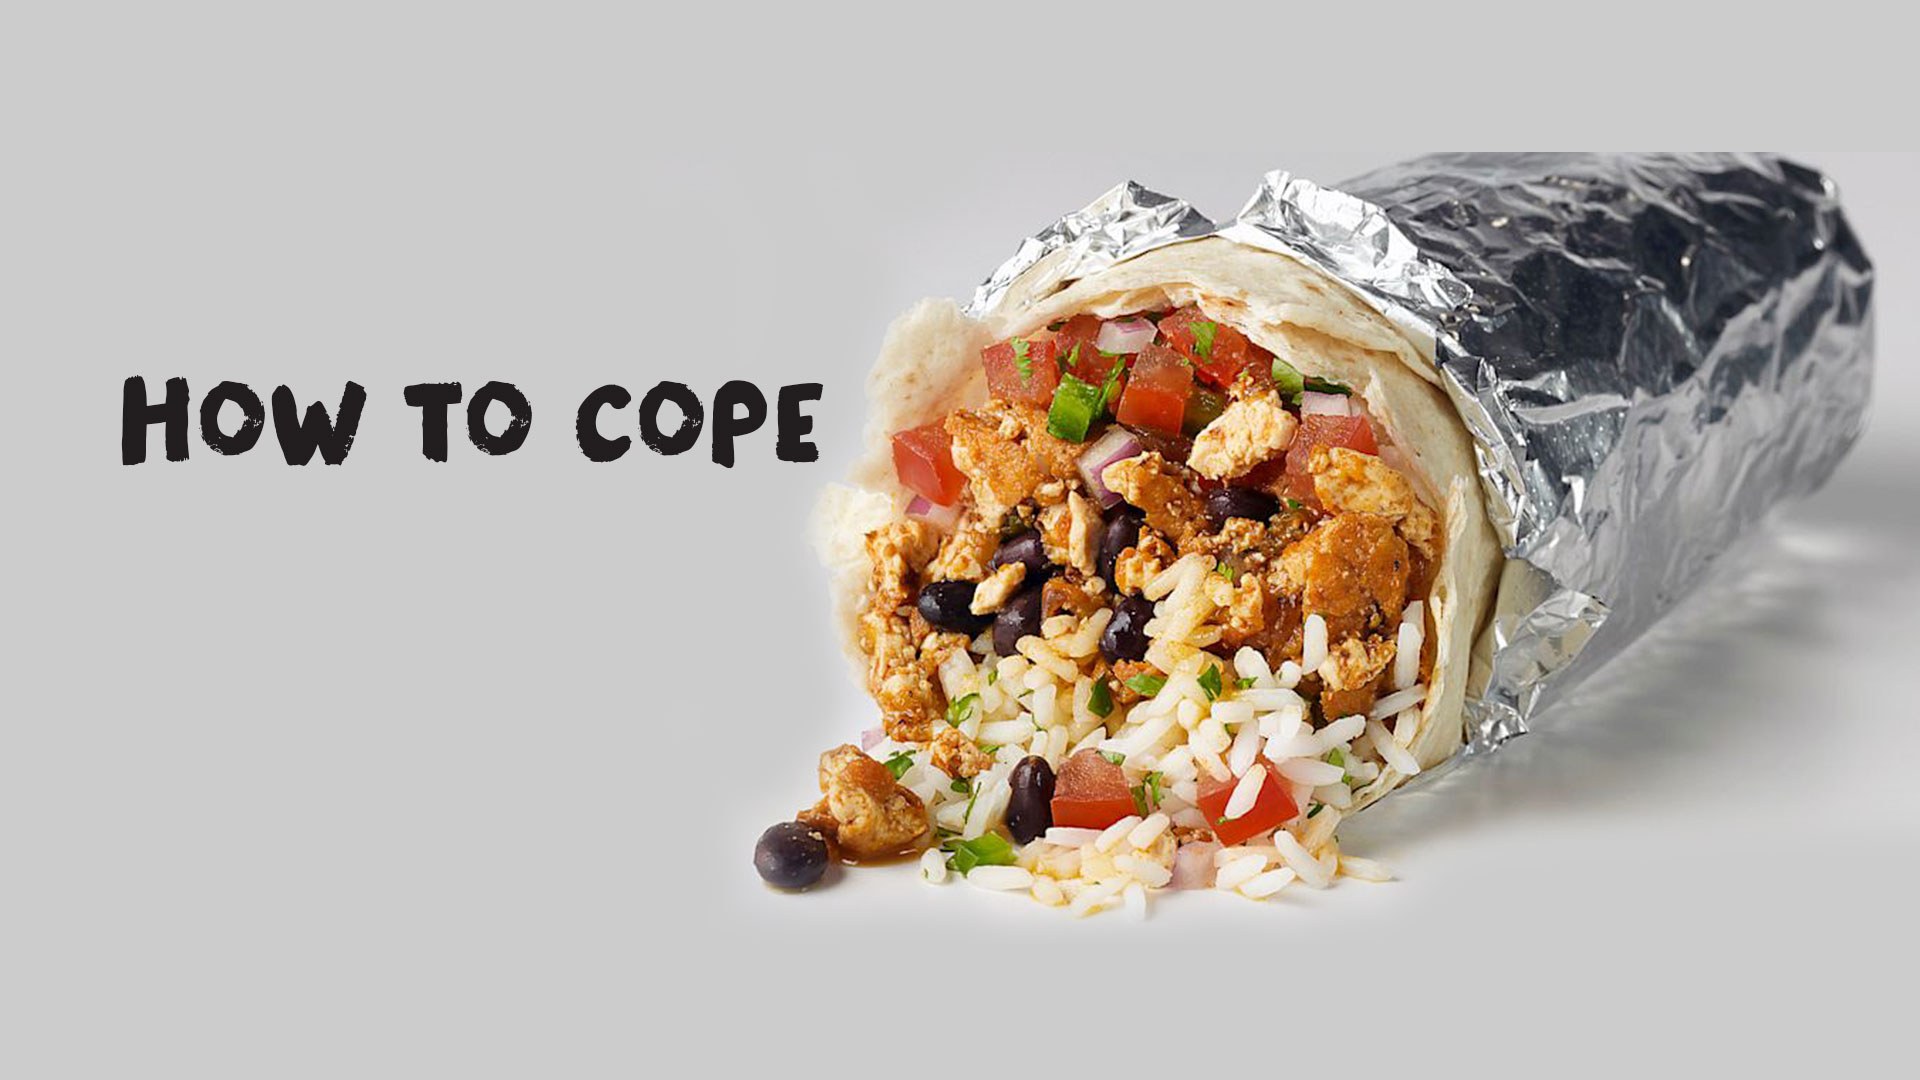 Broken Heart Quotes Wallpapers For Mobile Download Chipotle Wallpaper Gallery